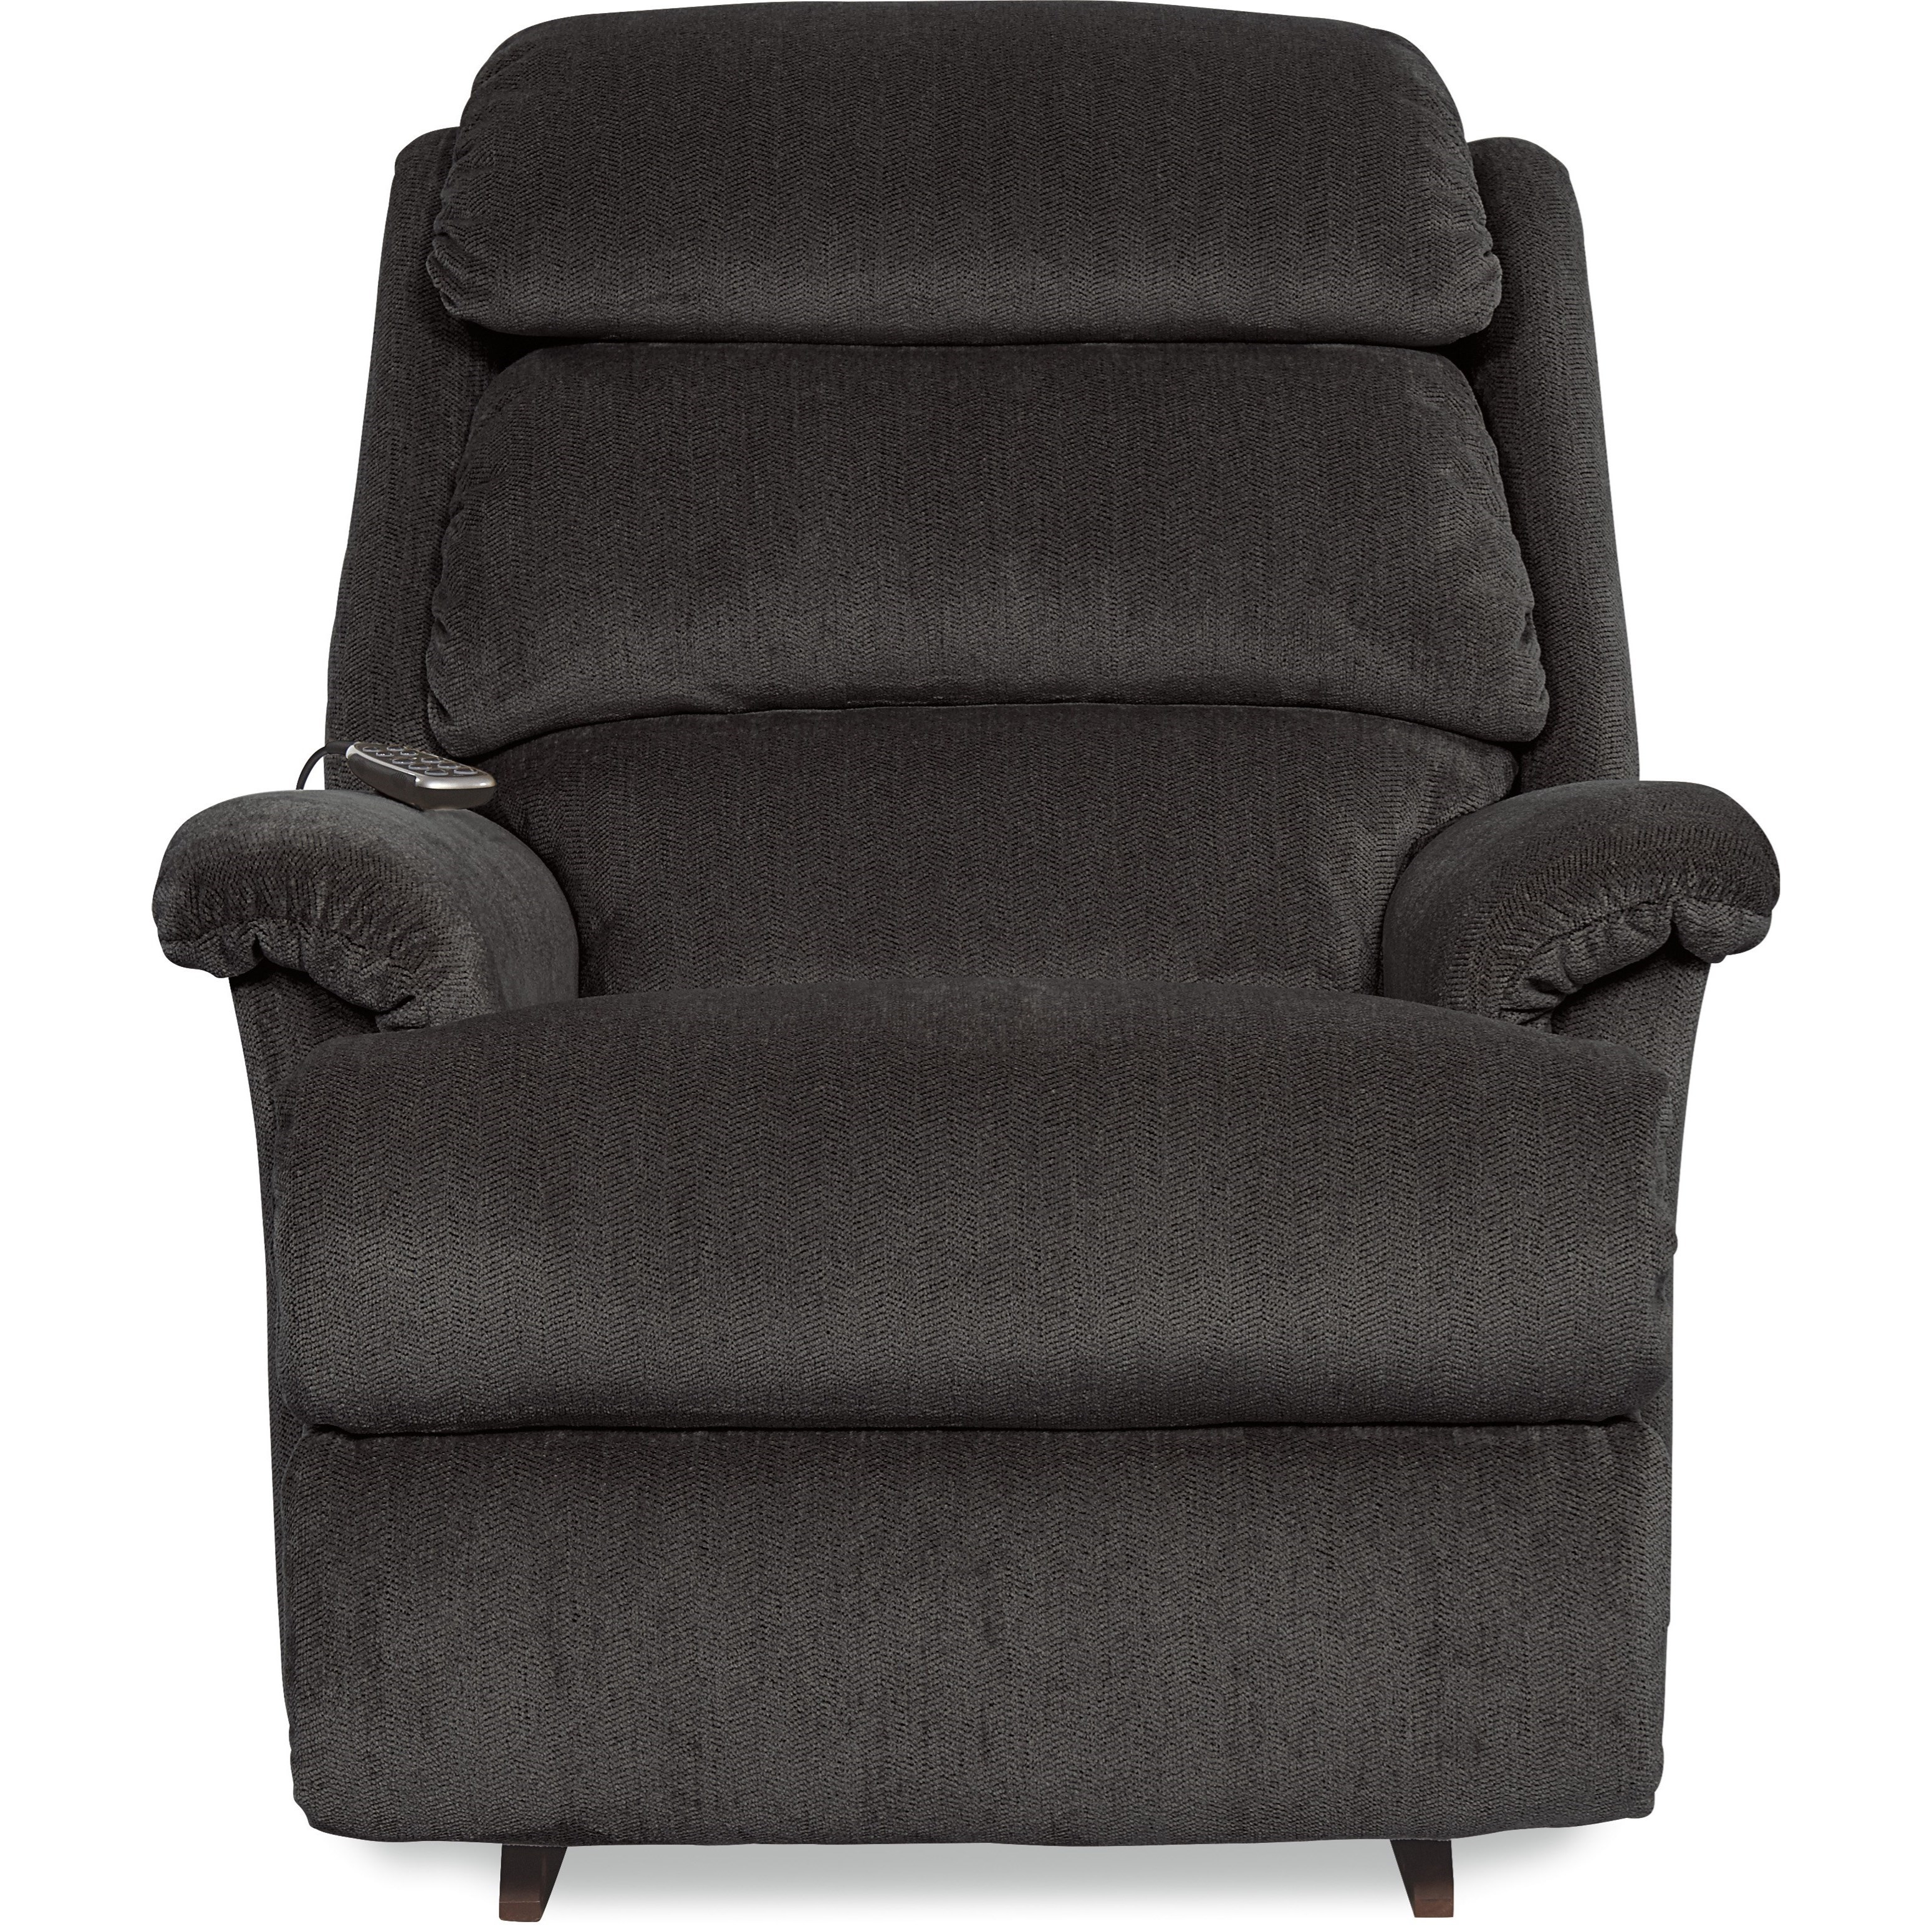 Astor Power Rocking Recliner w/ Headrest & Lumbar by La-Z-Boy at Houston's Yuma Furniture